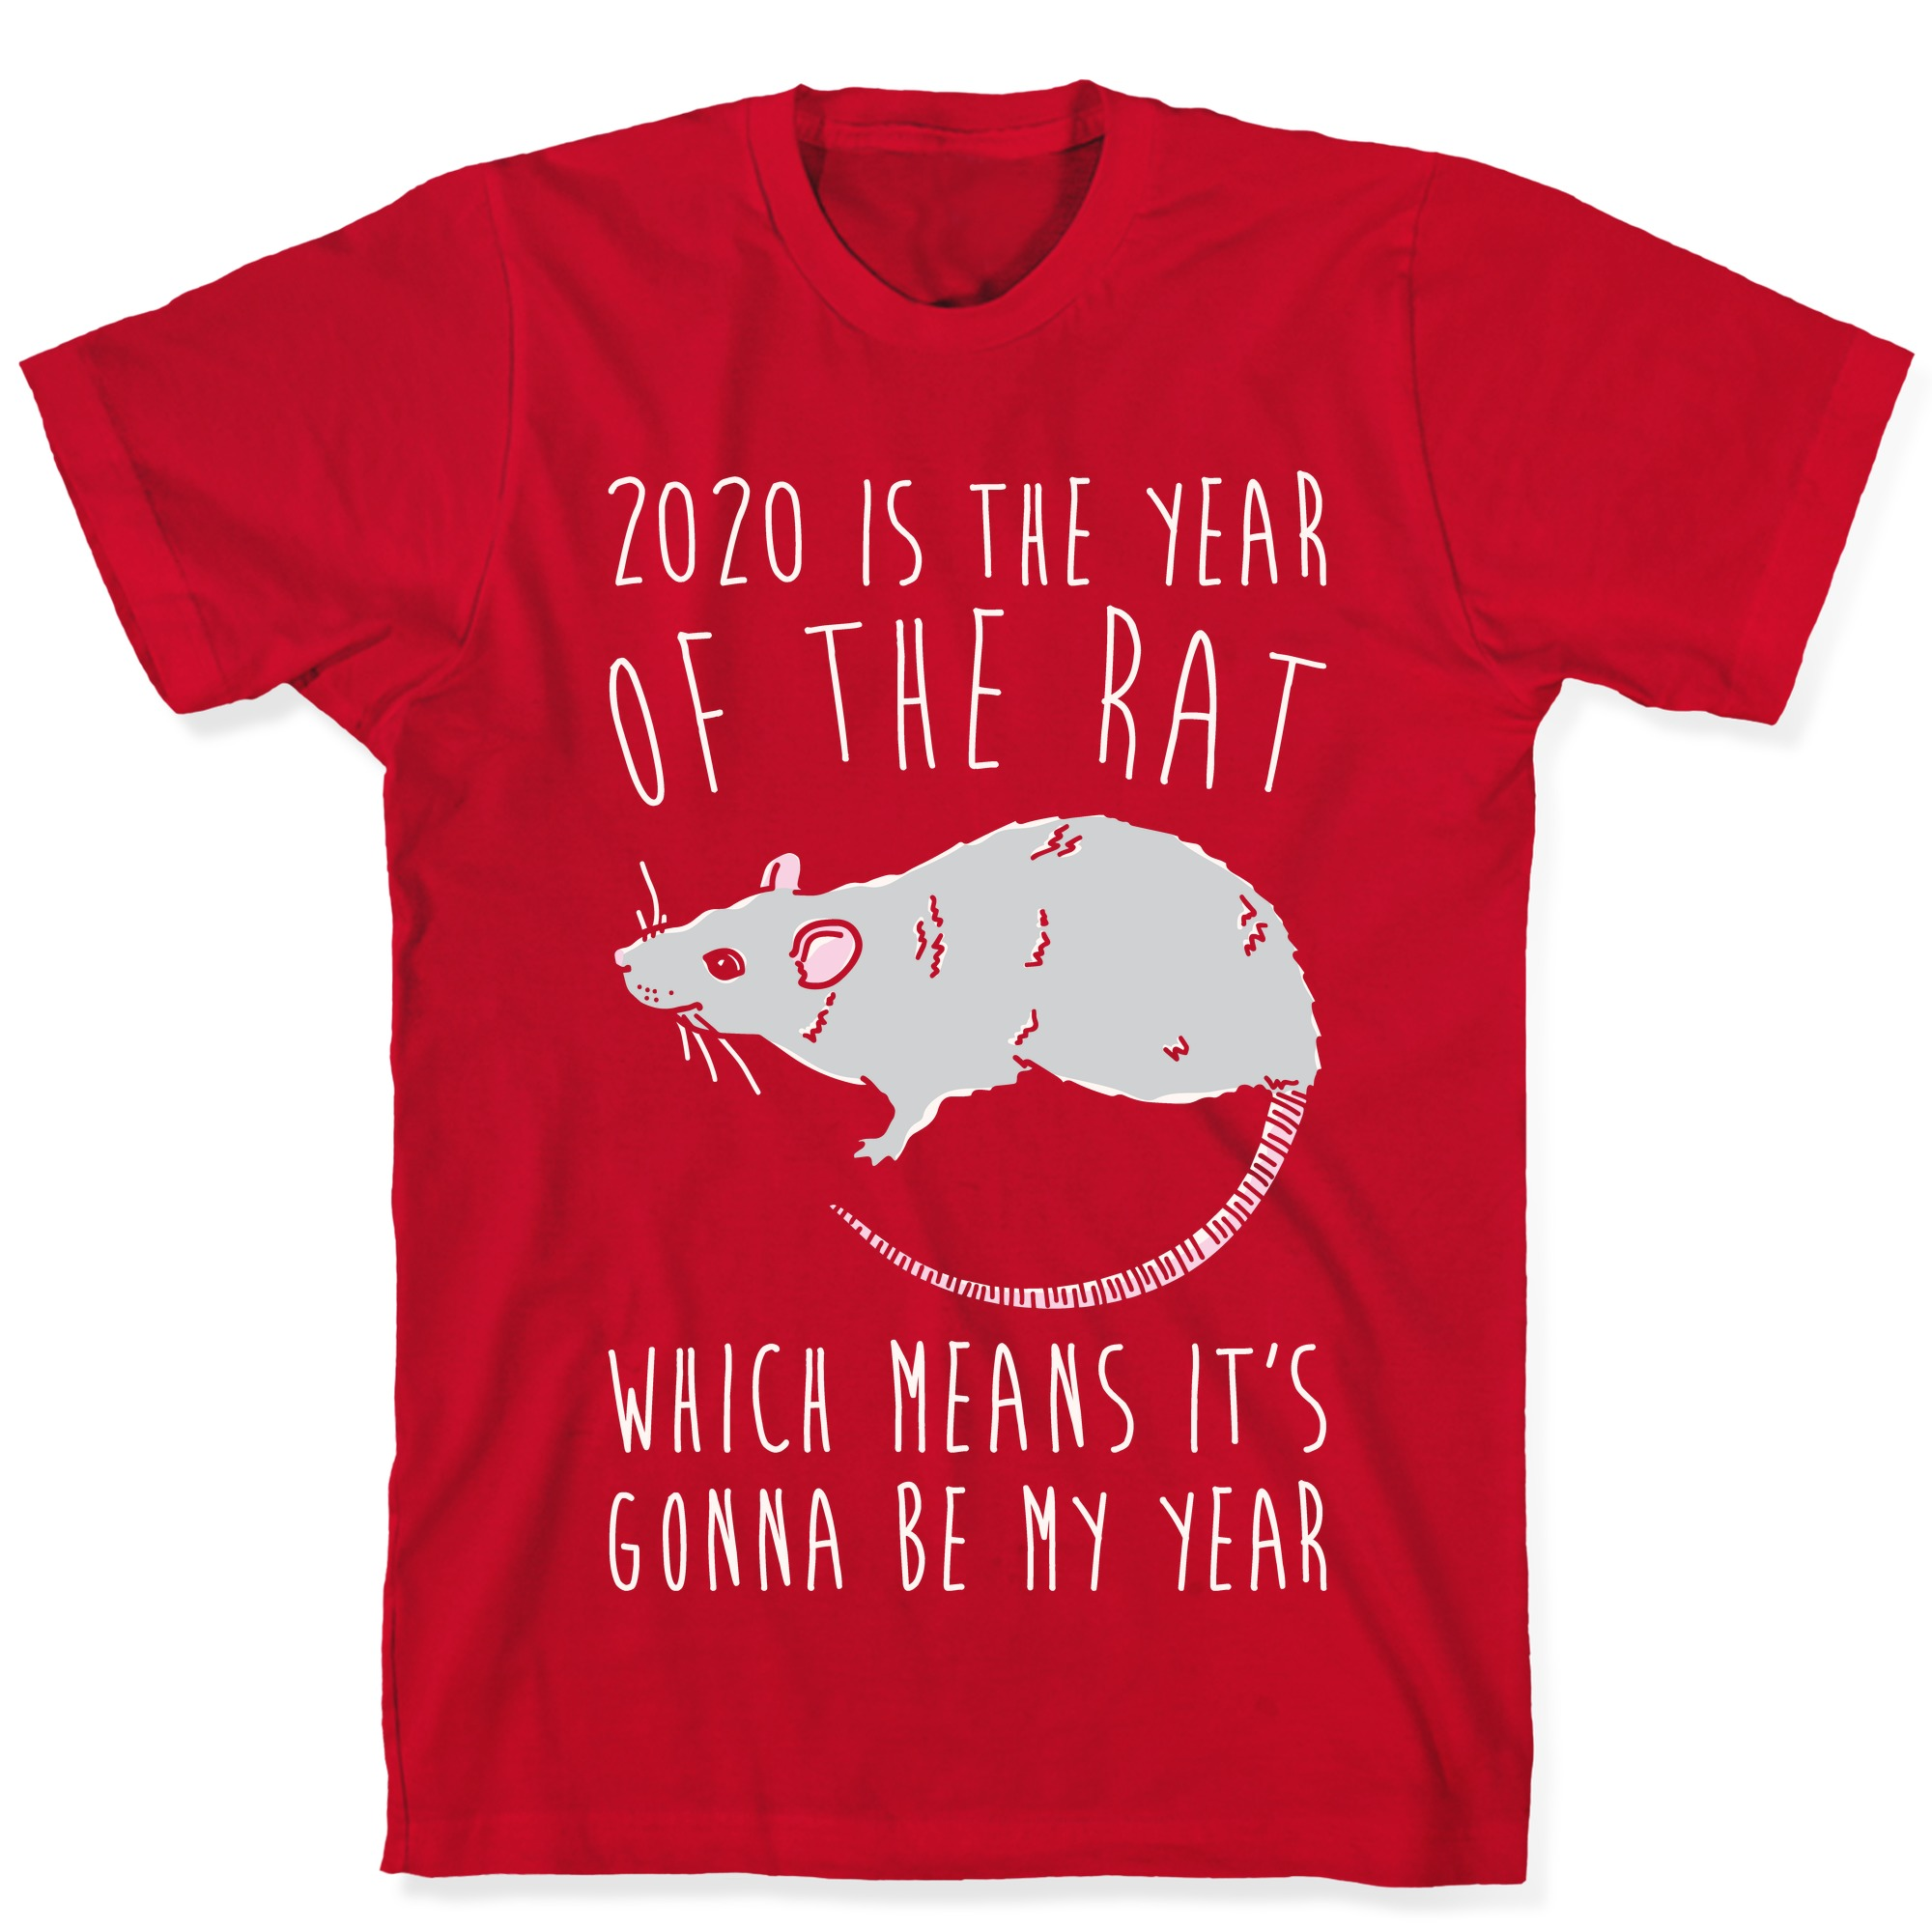 2020 /'Year of the Rat/' Print